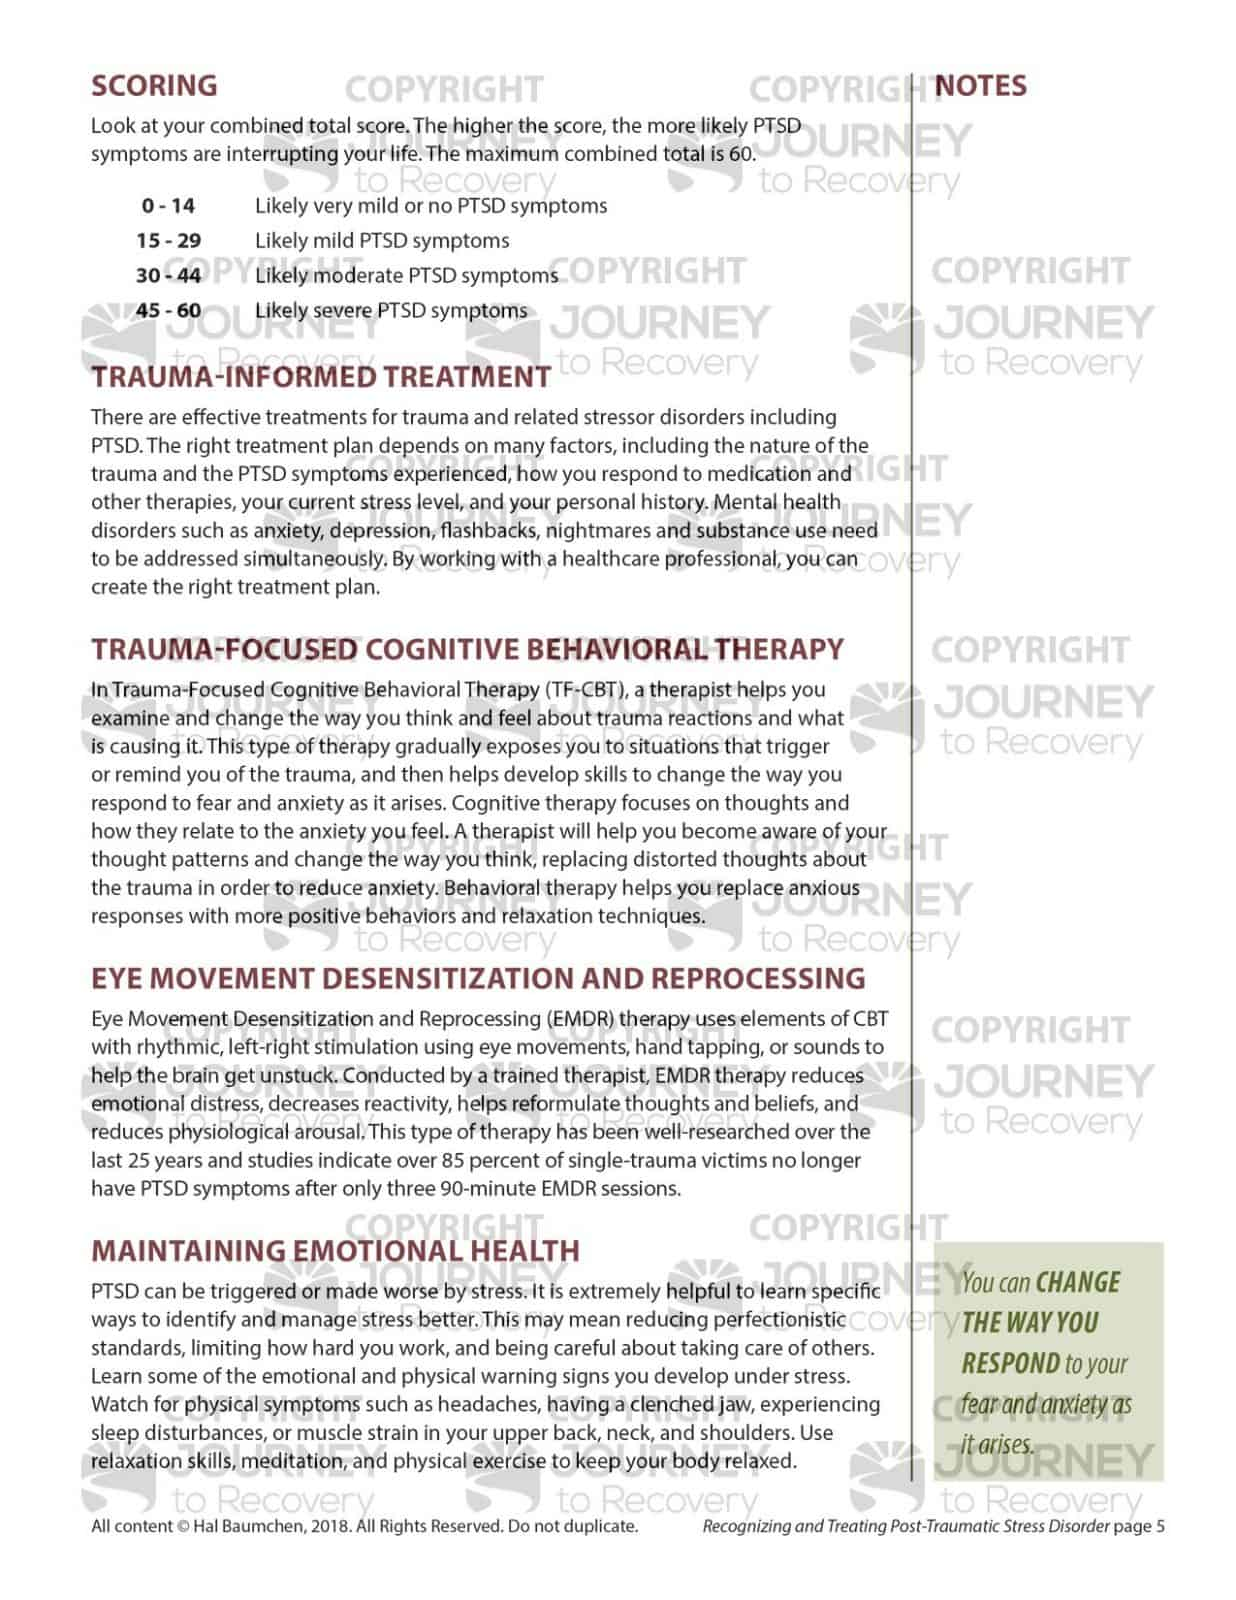 Recognizing And Treating Post Traumatic Stress Disorder Mh Lesson